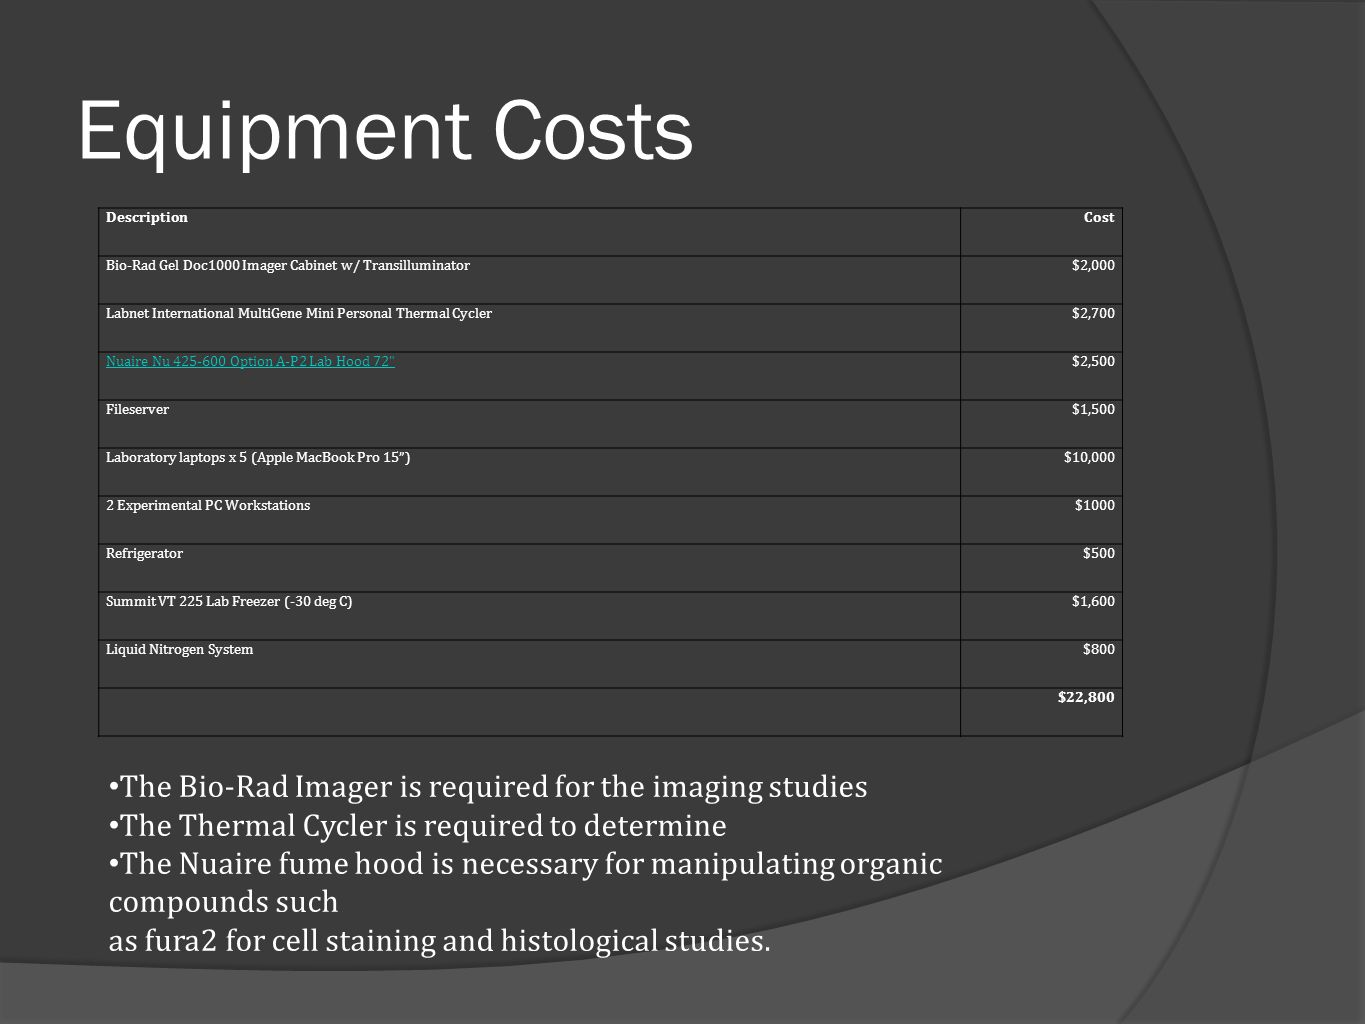 Equipment Costs The Bio-Rad Imager is required for the imaging studies